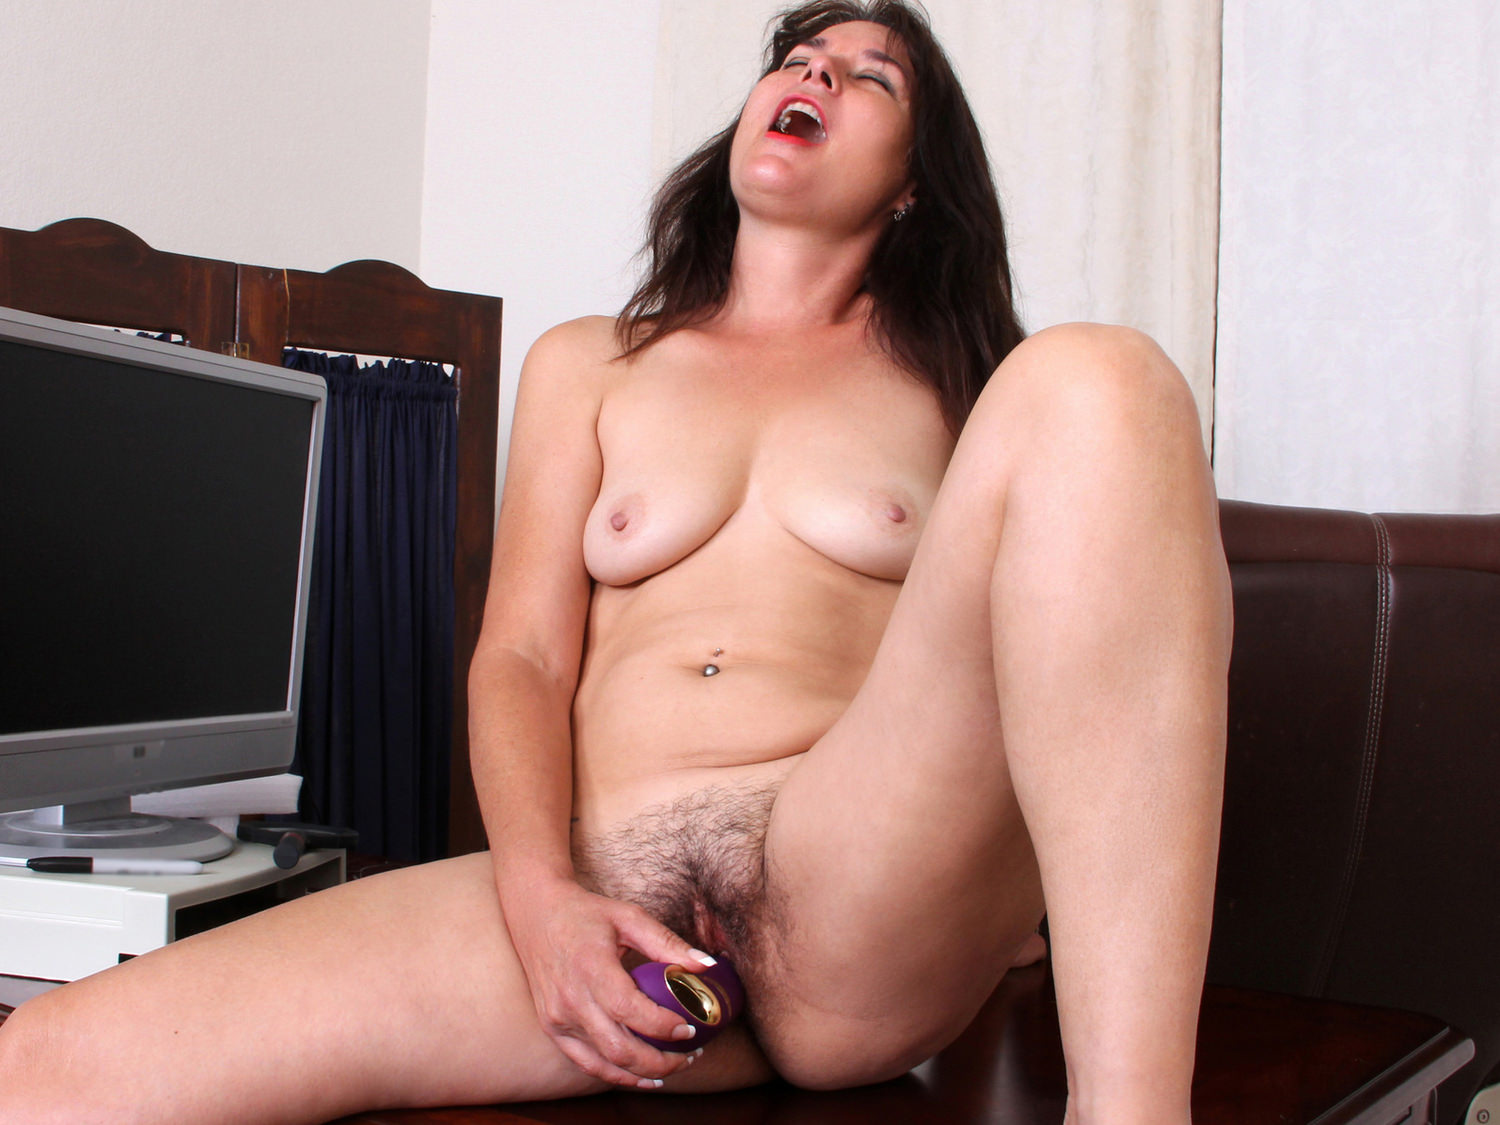 Hairy mom is masturbating on the couch while a hidden camera is recording her in action